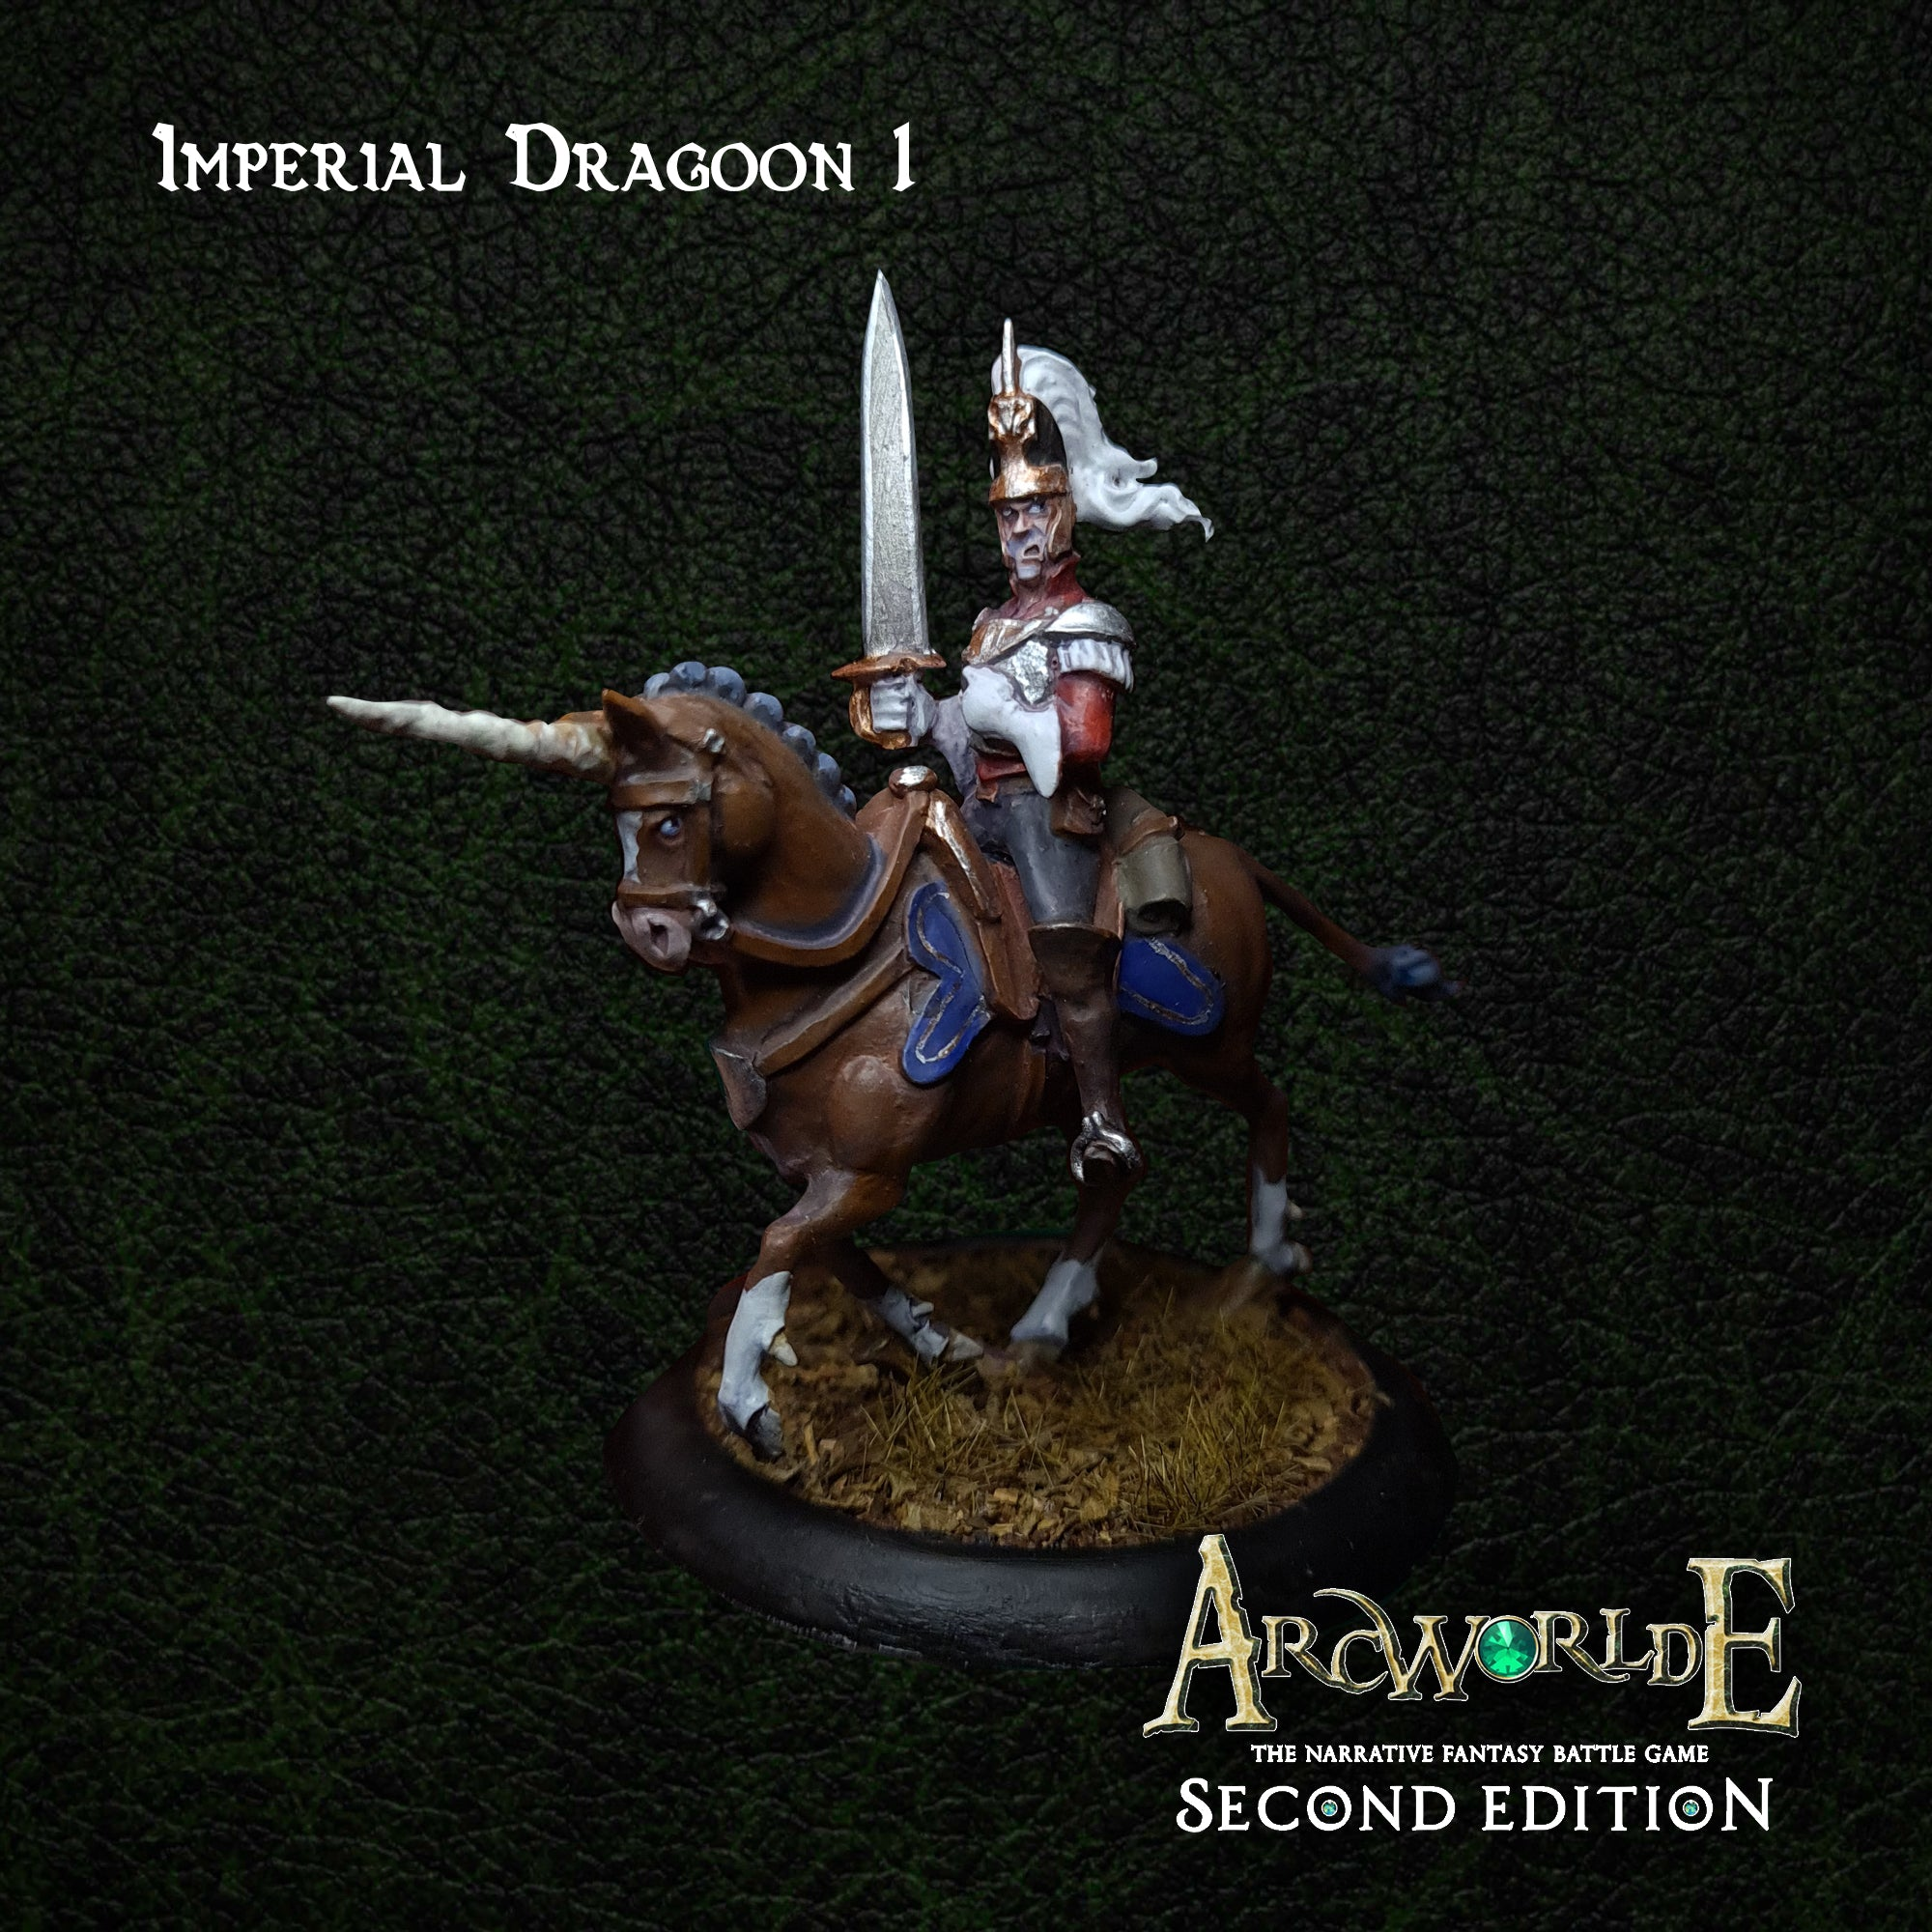 Imperial Dragoon 1